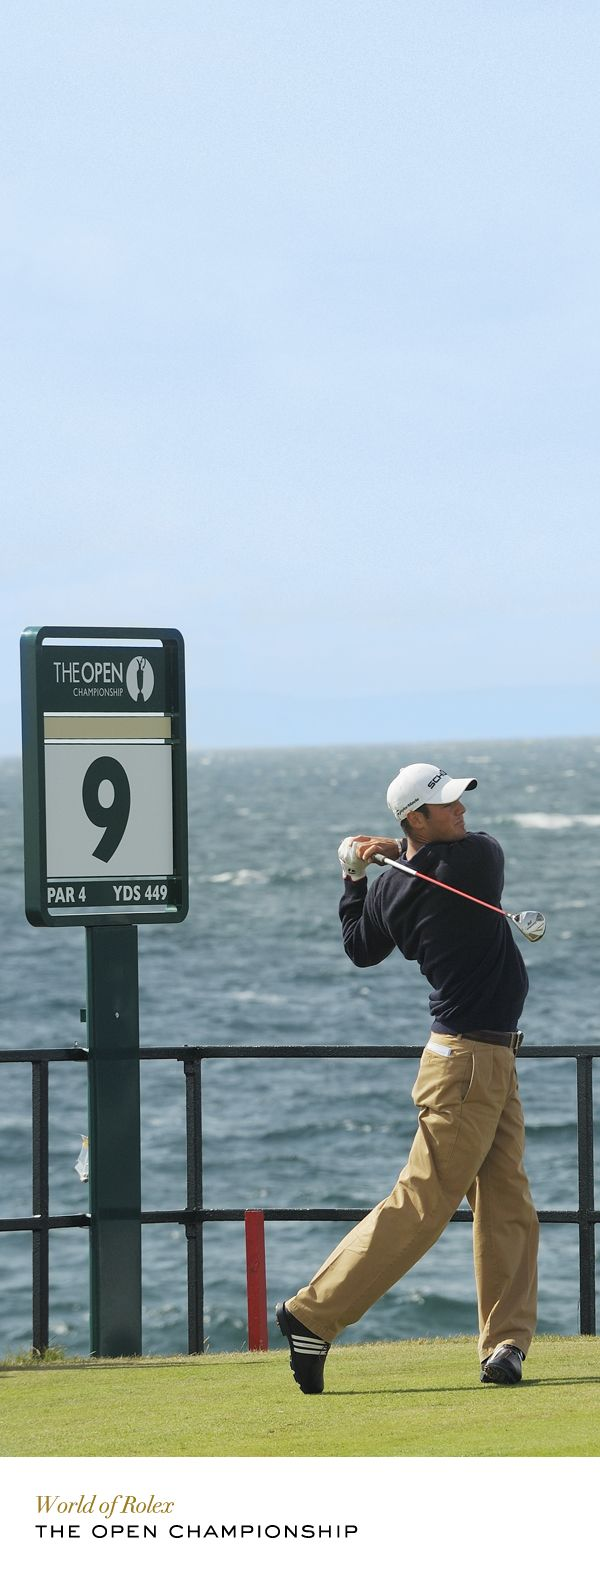 Martin Kaymer at The Open Championship in 2009. #Rolex #RolexOfficial